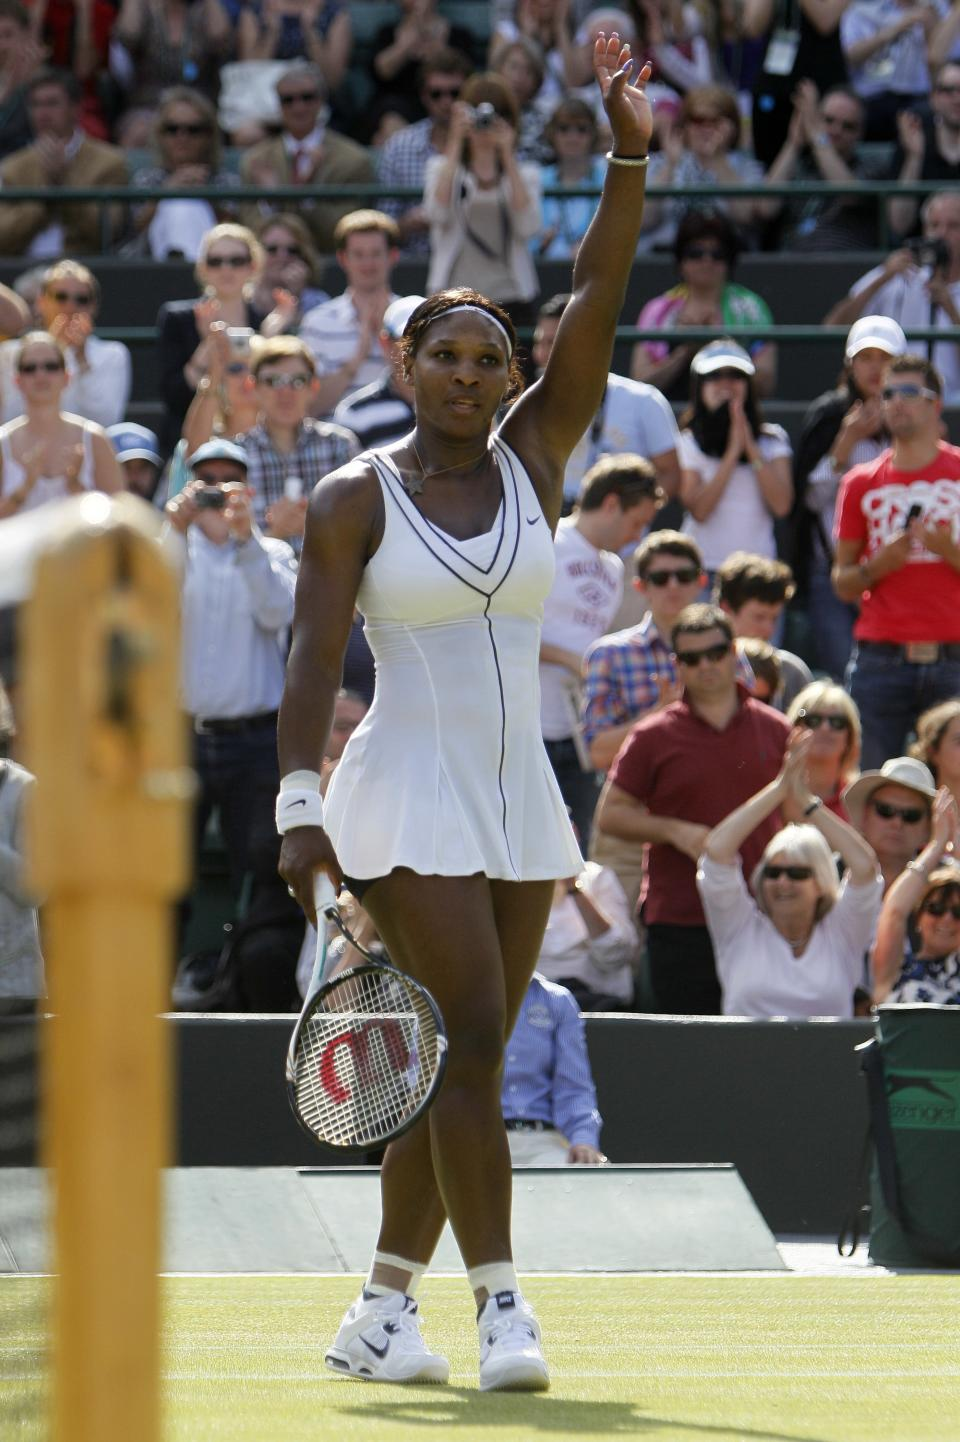 Serena Williams of the US celebrates after her win over Russia's Maria Kirilenko at the All England Lawn Tennis Championships at Wimbledon, Saturday, June 25, 2011. (AP Photo/Alastair Grant)